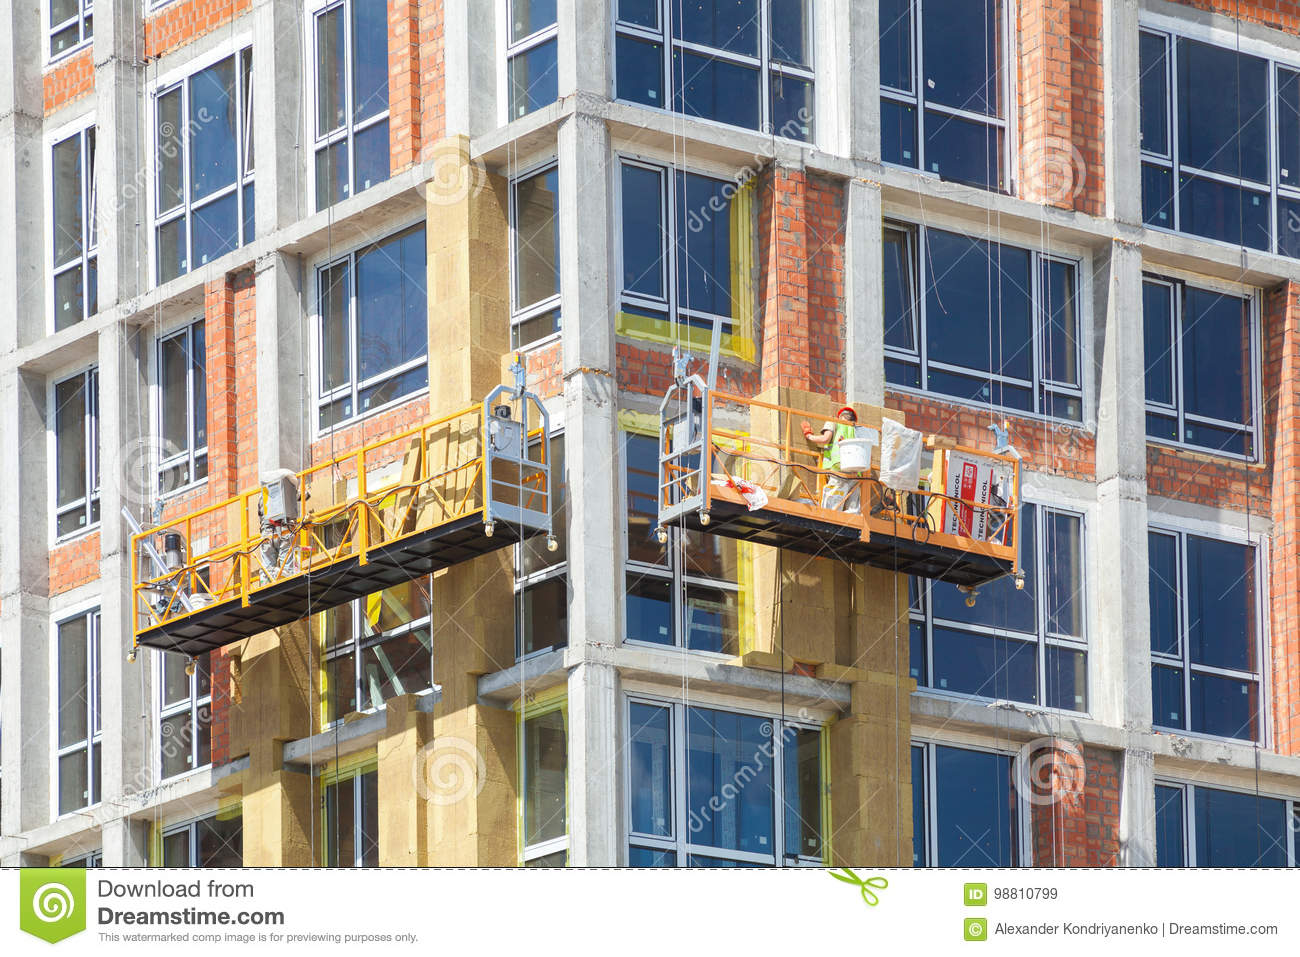 Exterior house wall heat insulation with mineral wool, building under construction